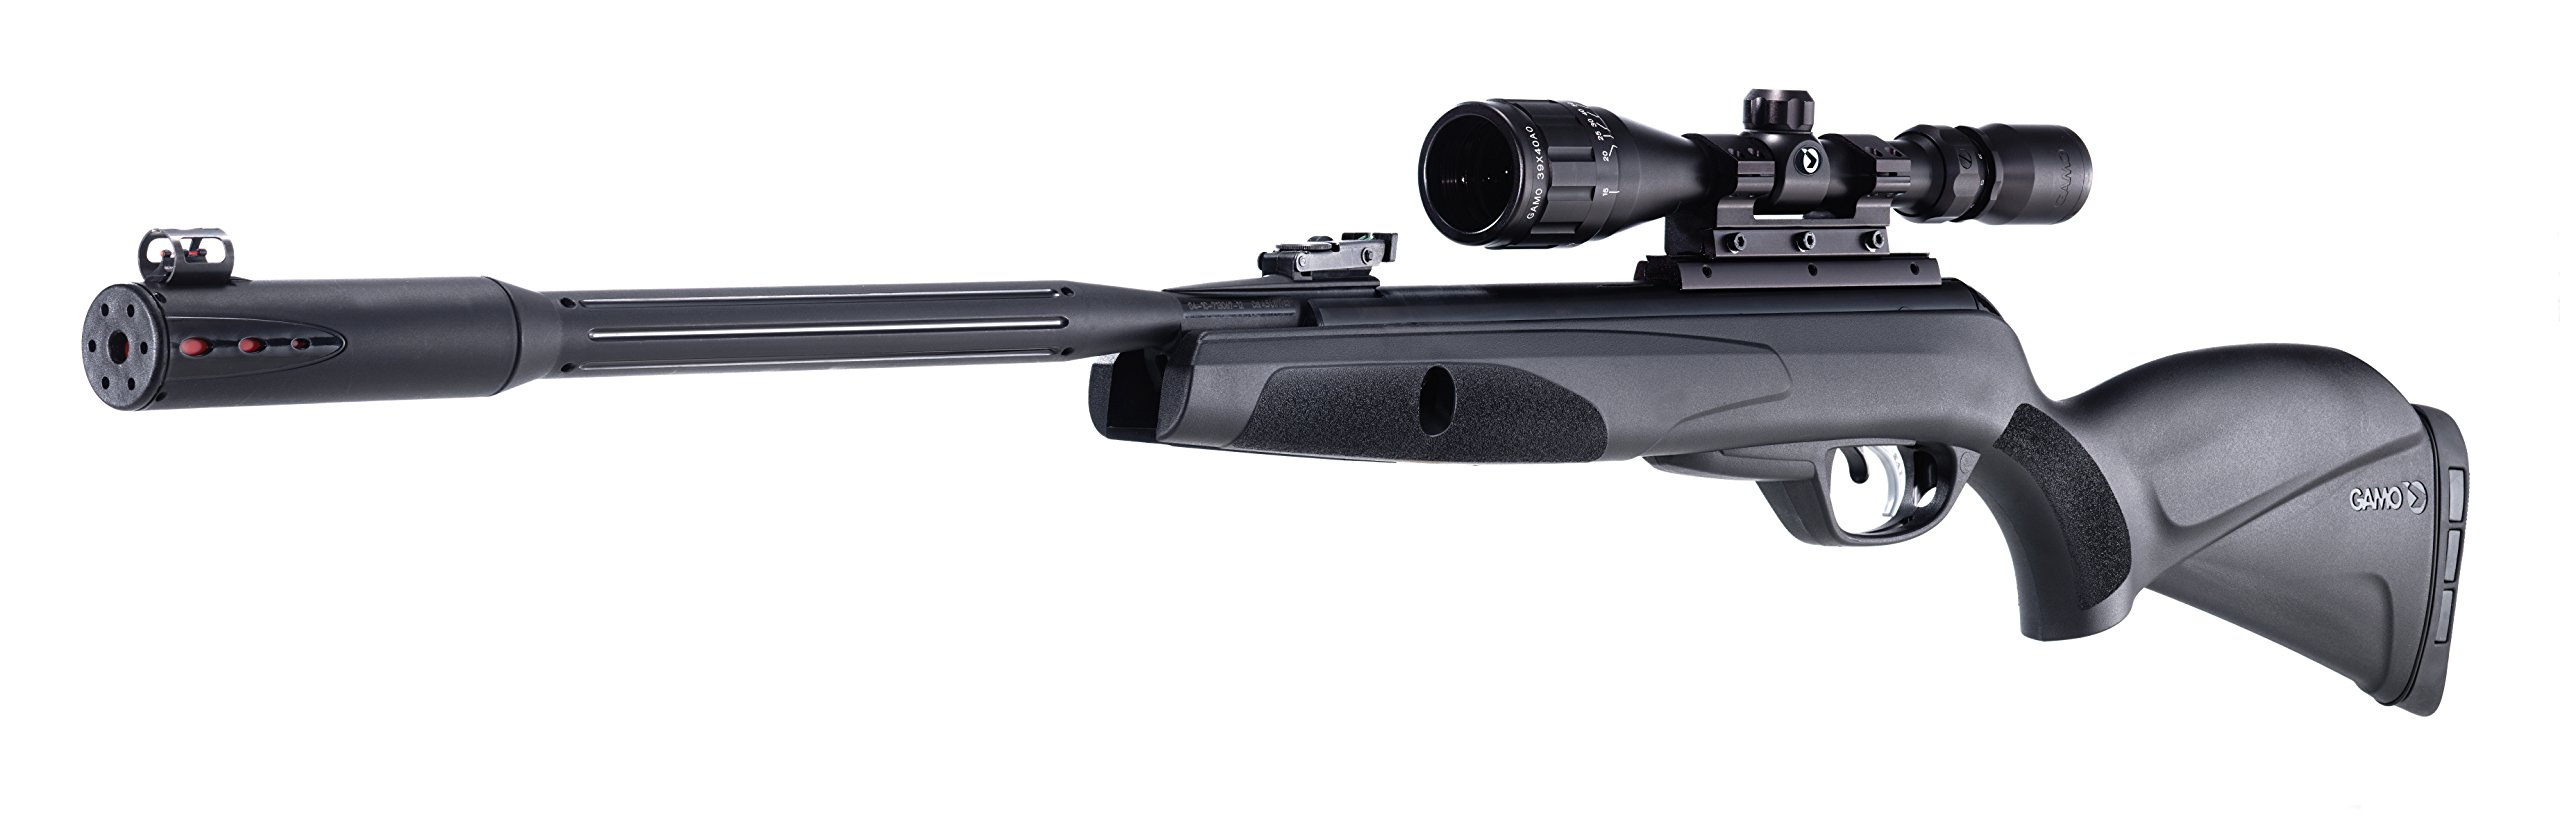 Gamo Whisper Fusion Pro 0.22-Calibre Air Rifle